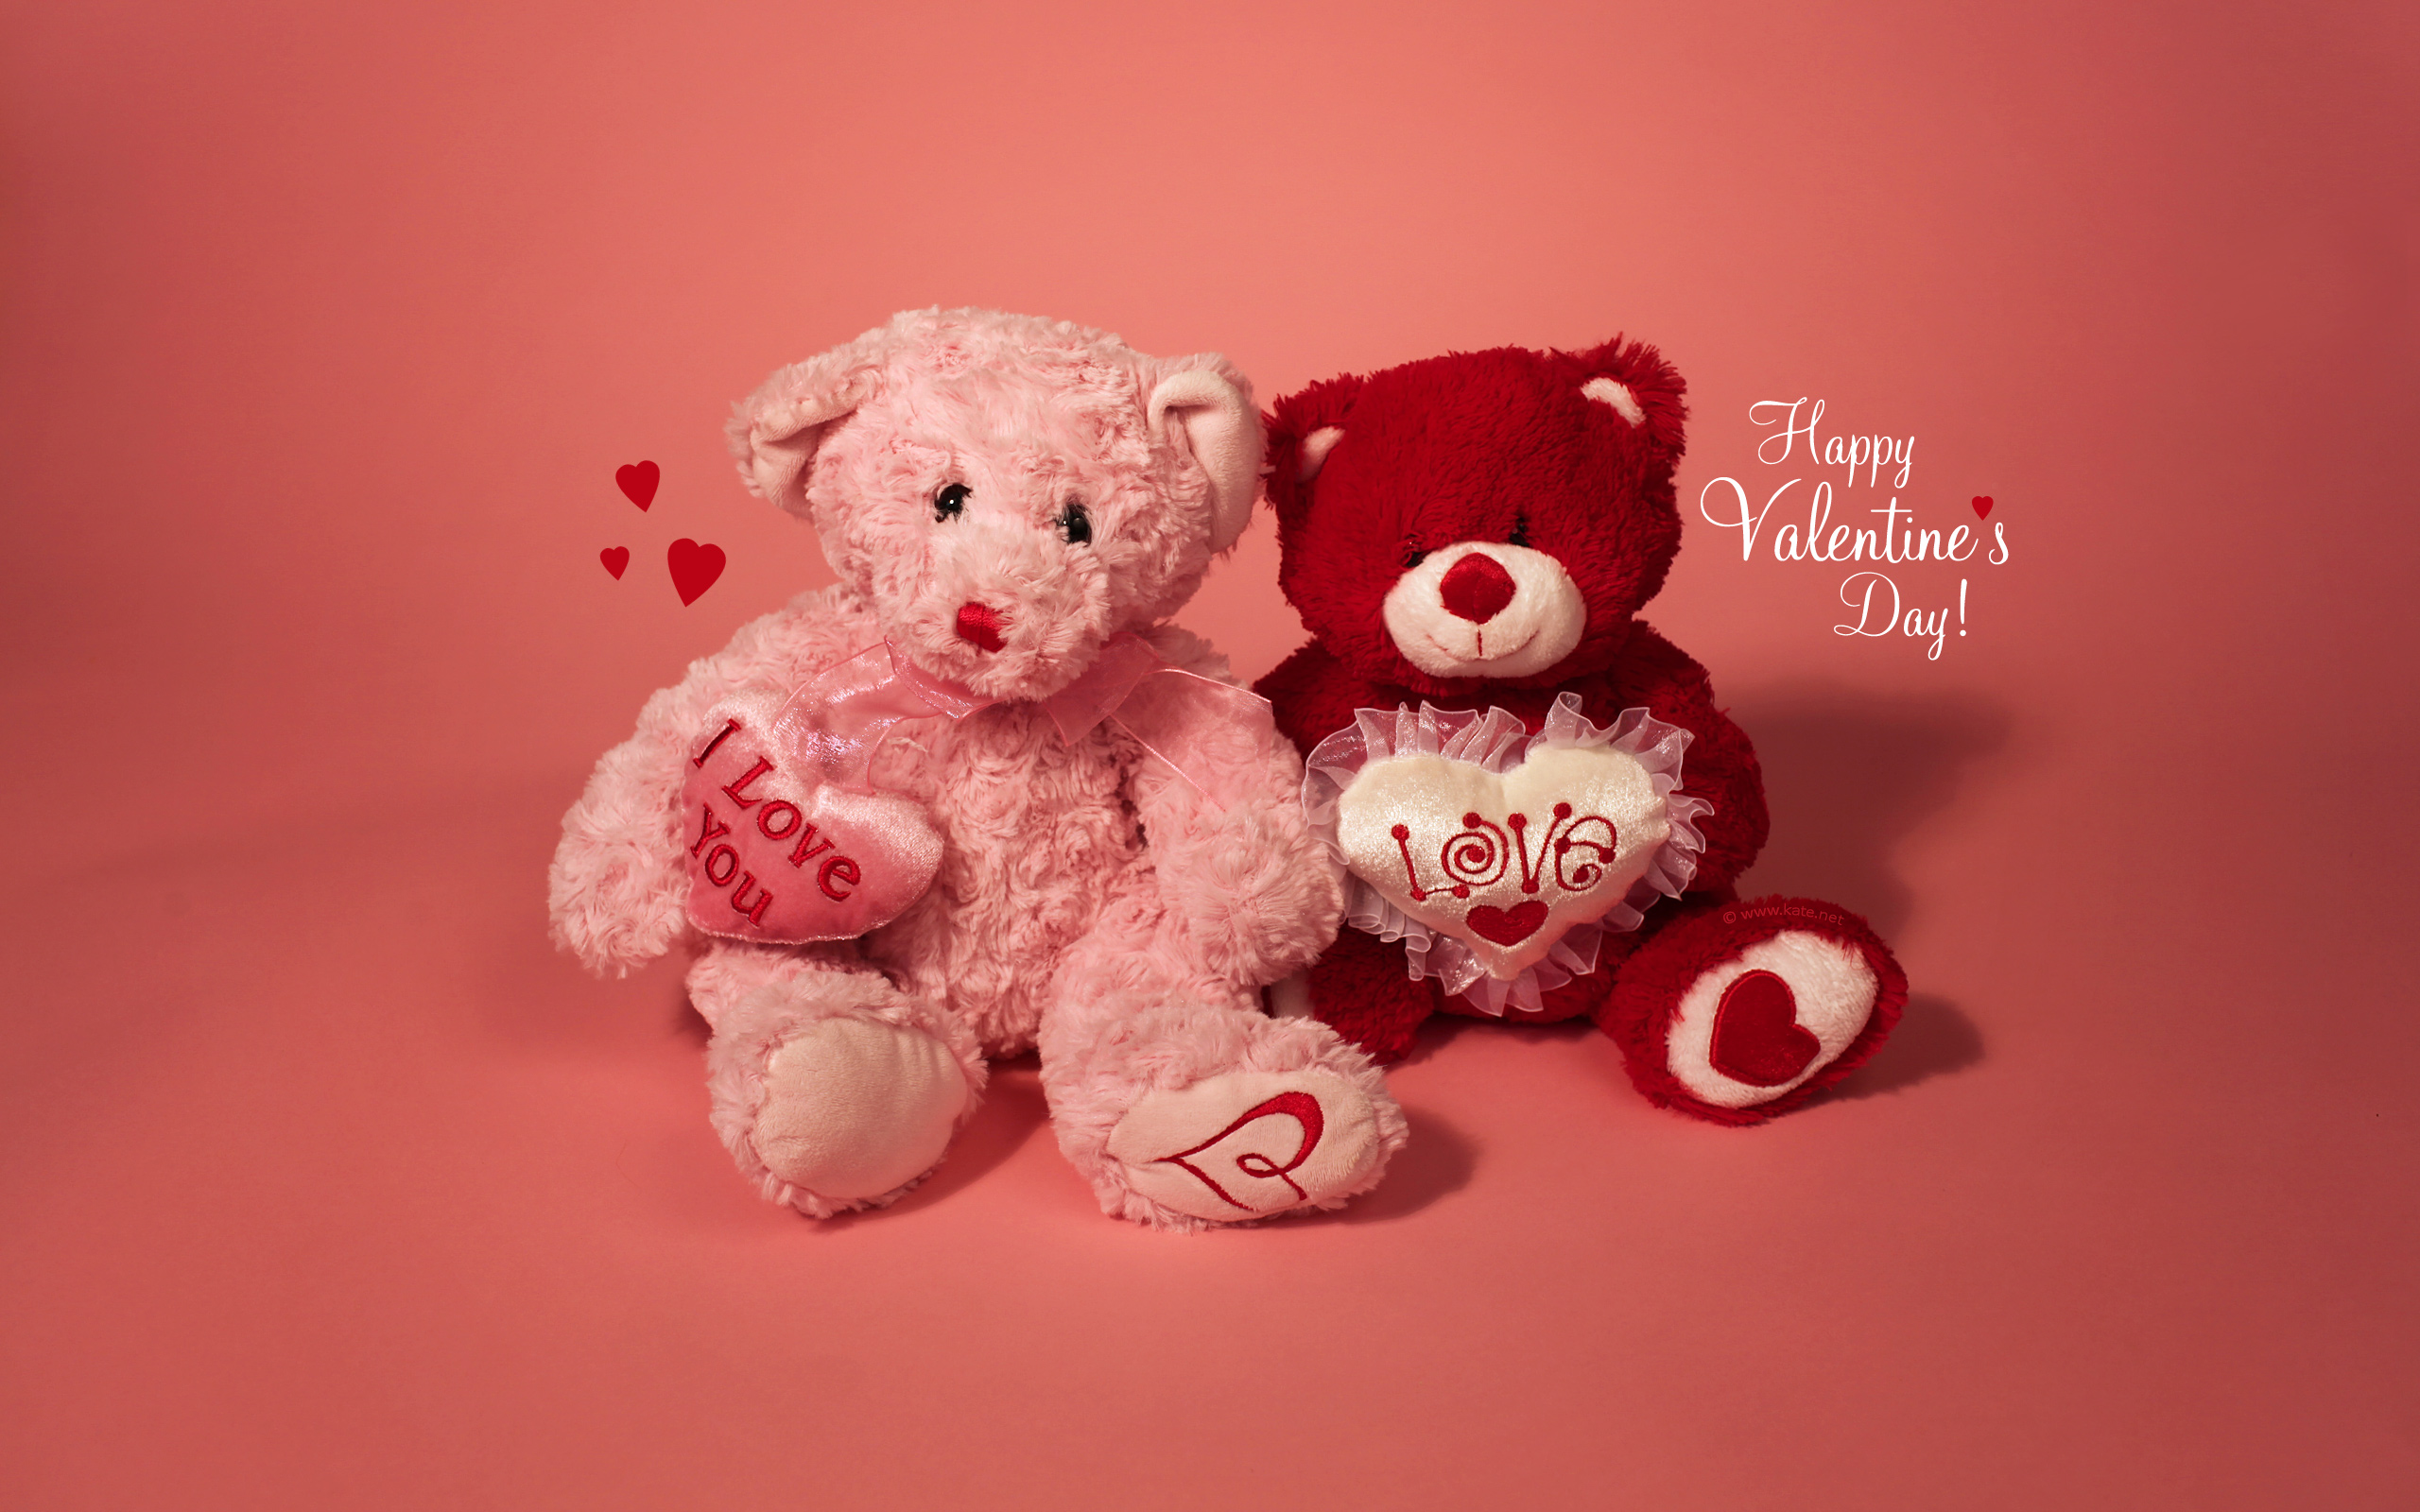 Teddy bears for my valentine full hd wallpaper and background holiday valentines day teddy bear love happy valentines day stuffed animal wallpaper voltagebd Image collections